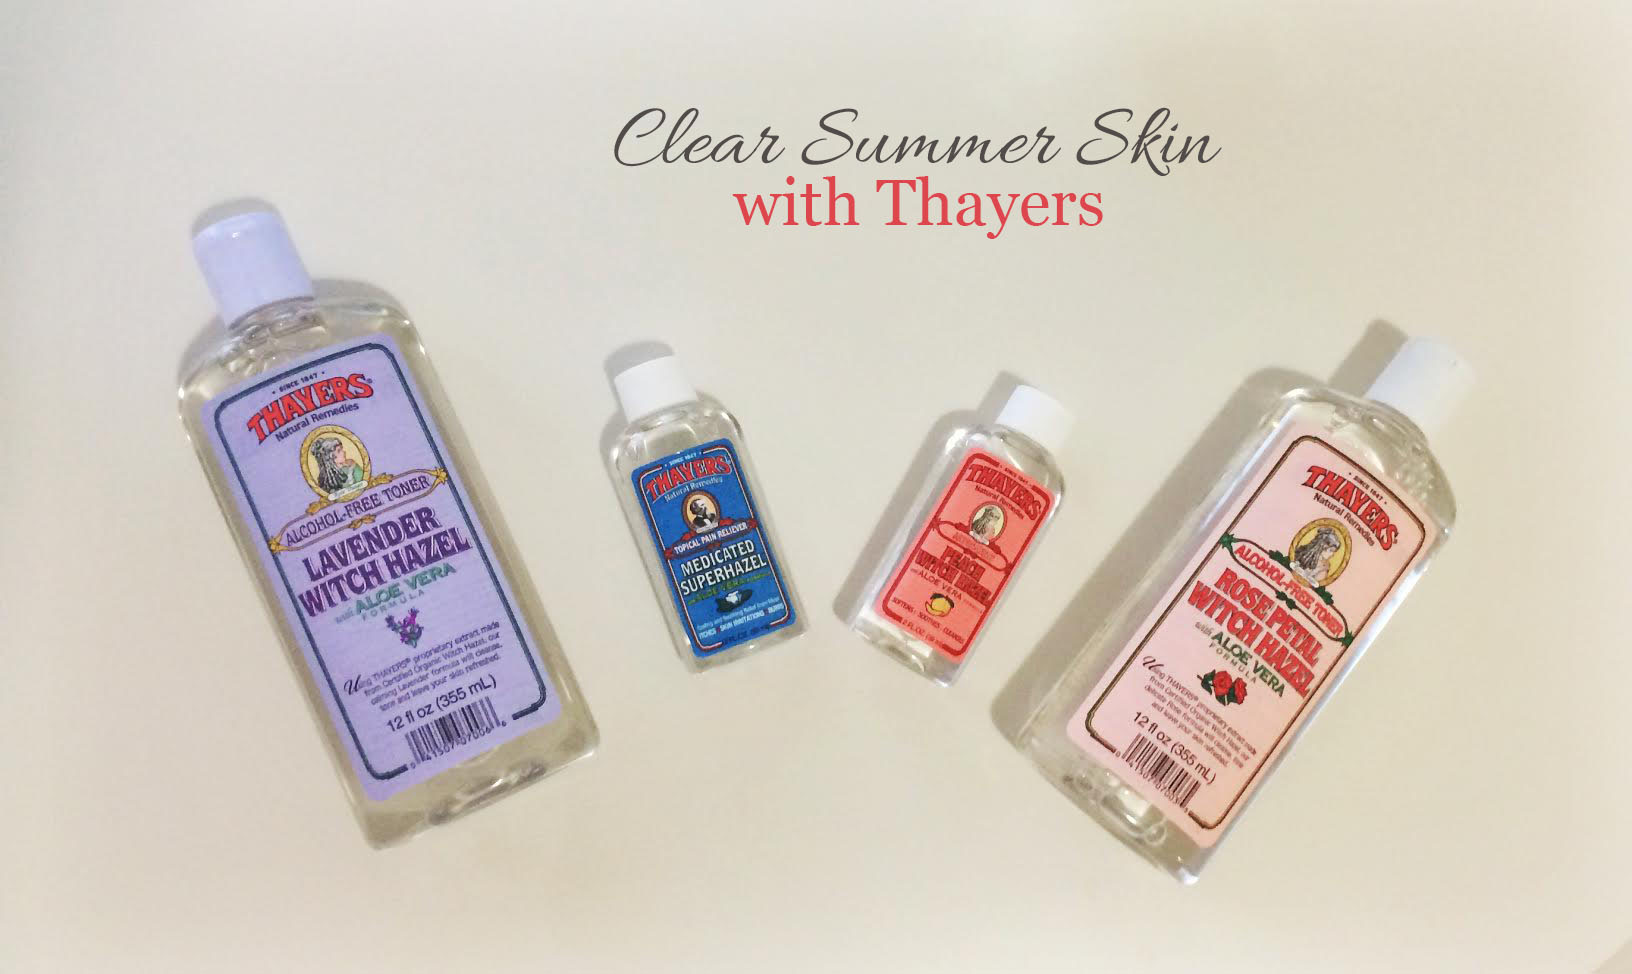 DC Girl in Pearls - How To Get Clear Summer Skin with Thayers